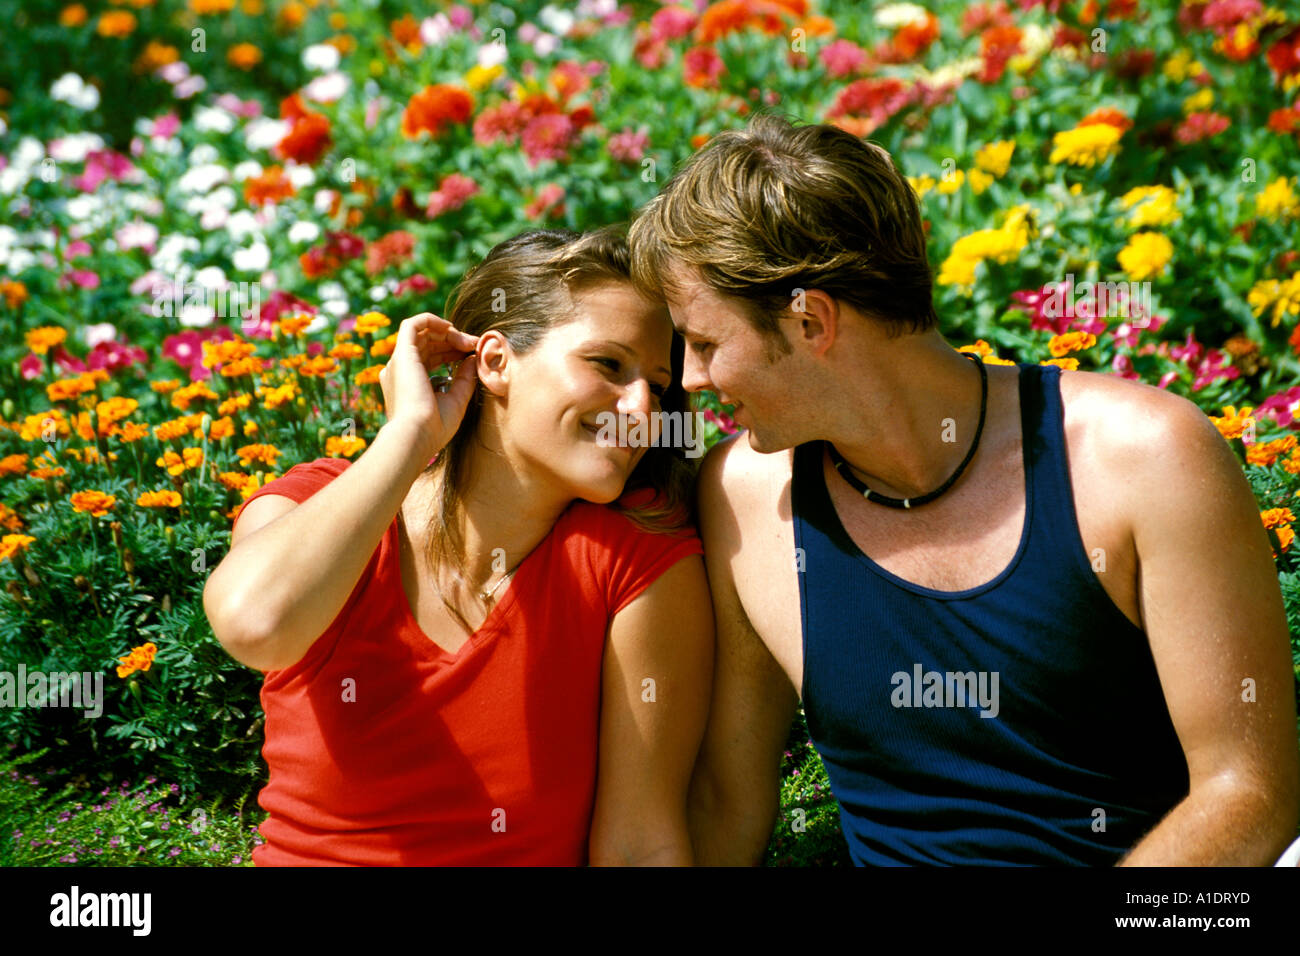 Bermuda St George Couple in Somers Garden - Stock Image